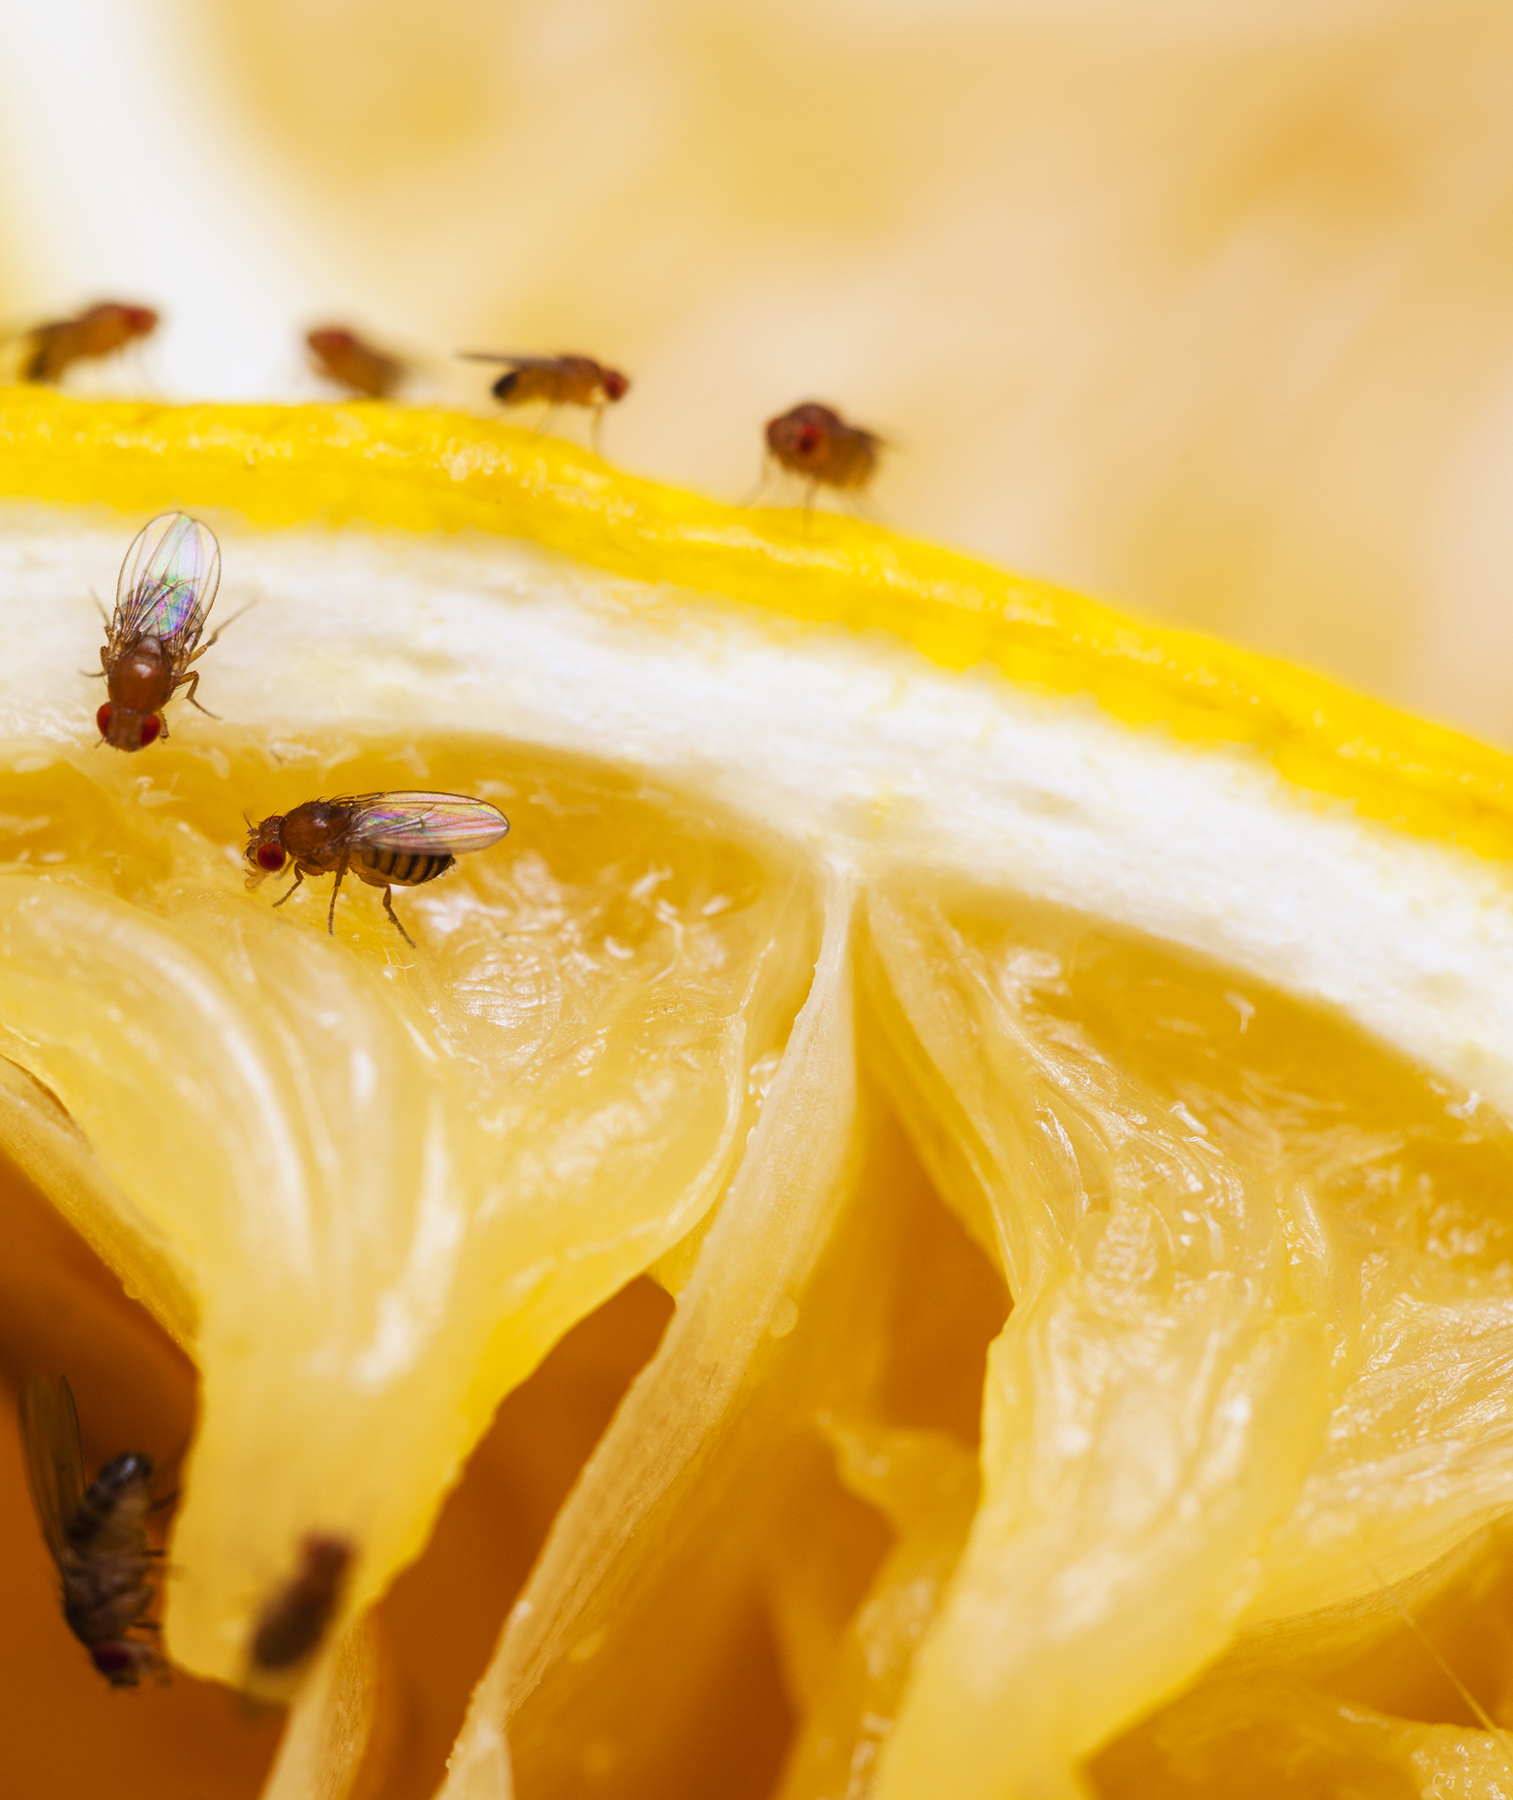 Fruit flies on a lemon